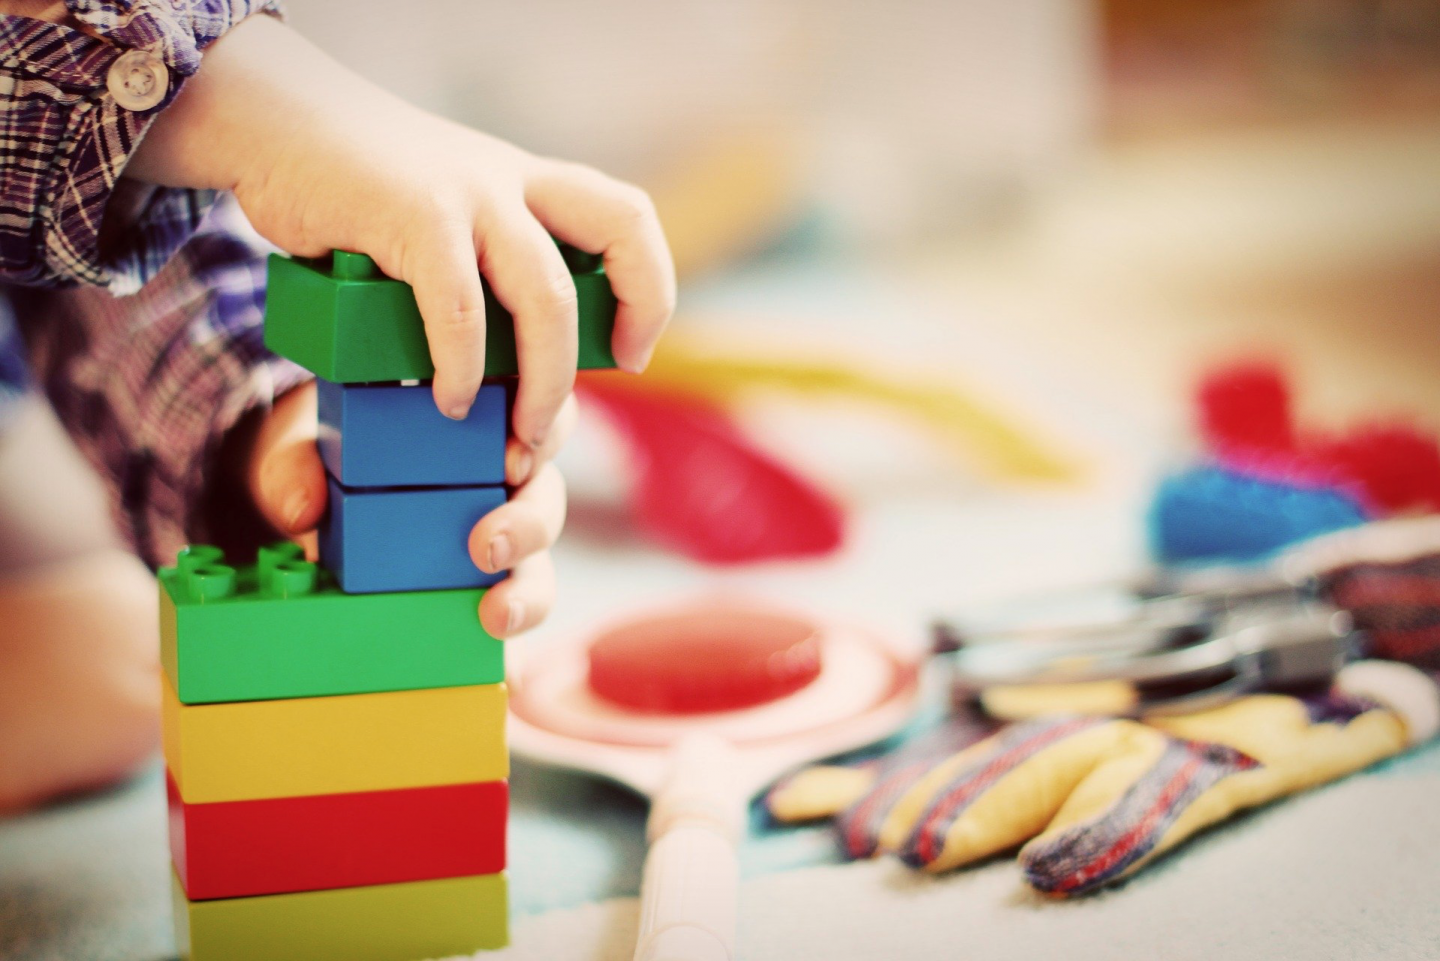 14 Sensory Toys for Children with Special Needs to Widen Their World